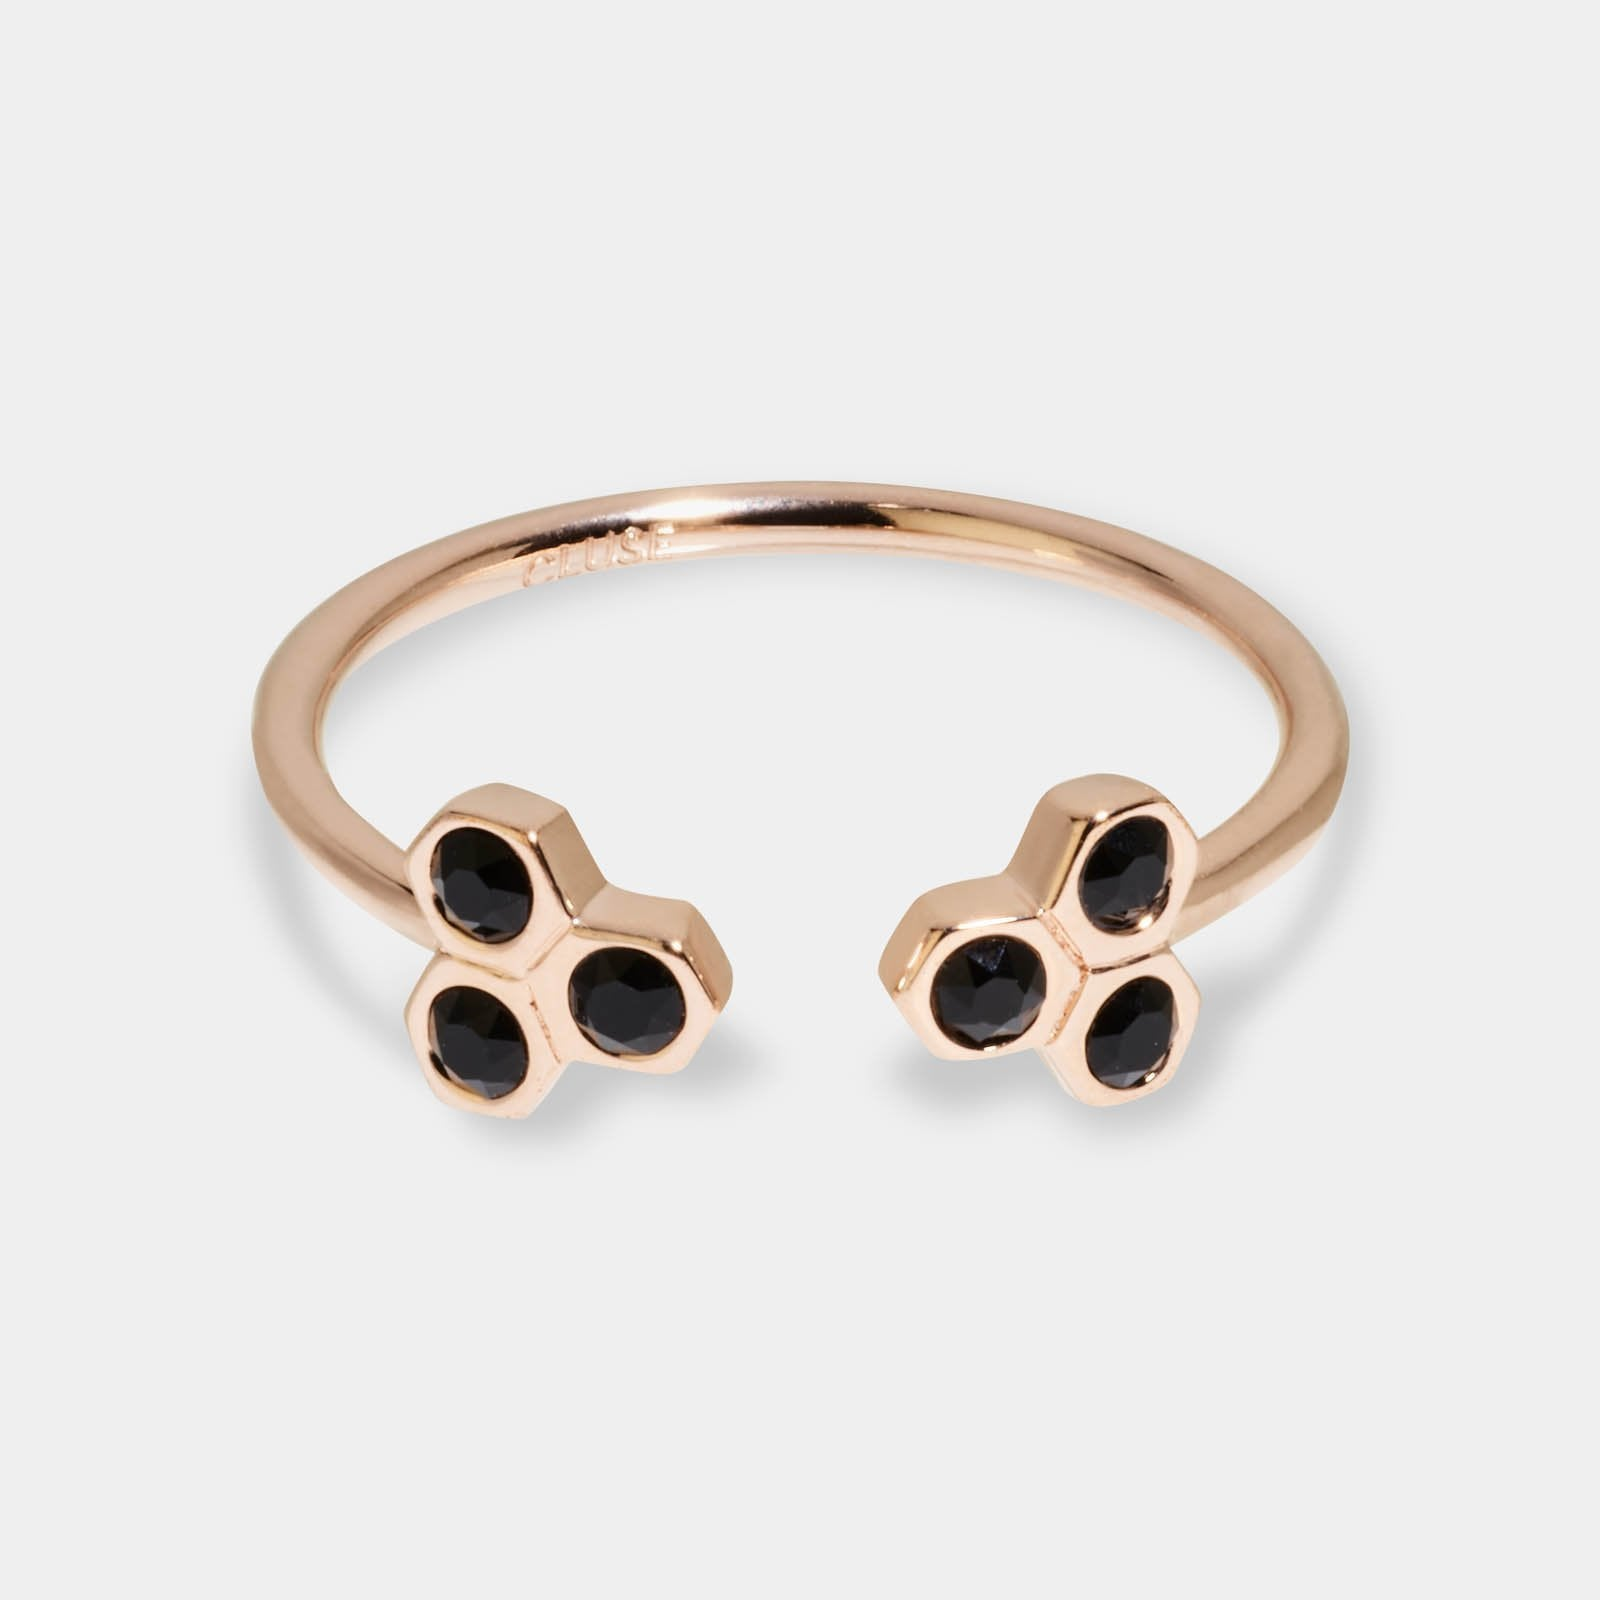 CLUSE Essentielle Rose Gold Black Crystal Hexagons Open Ring-52 CLJ40008-52 - Anello taglia 52